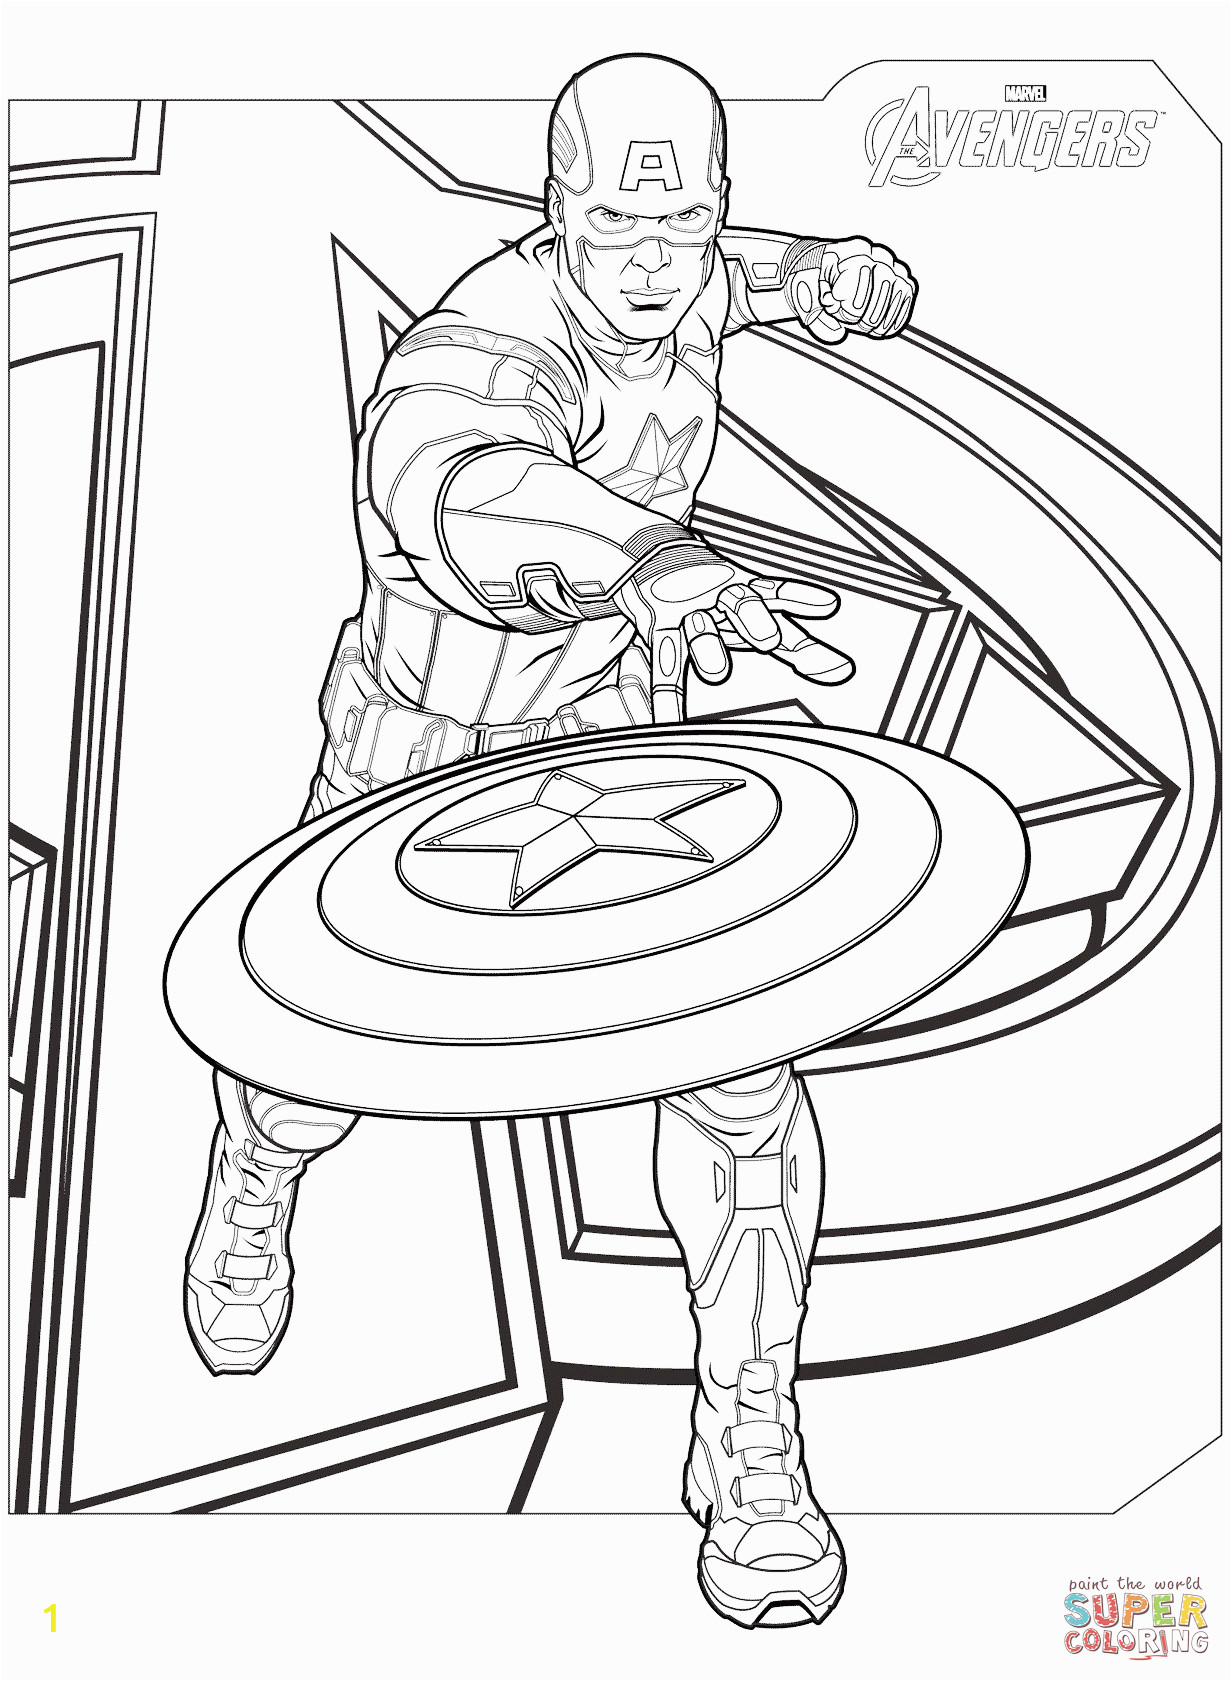 captain america coloring page avengers free printable pages marvel scarlet witch infinity war black panther thor machine movie colouring pictures ant man and the wasp